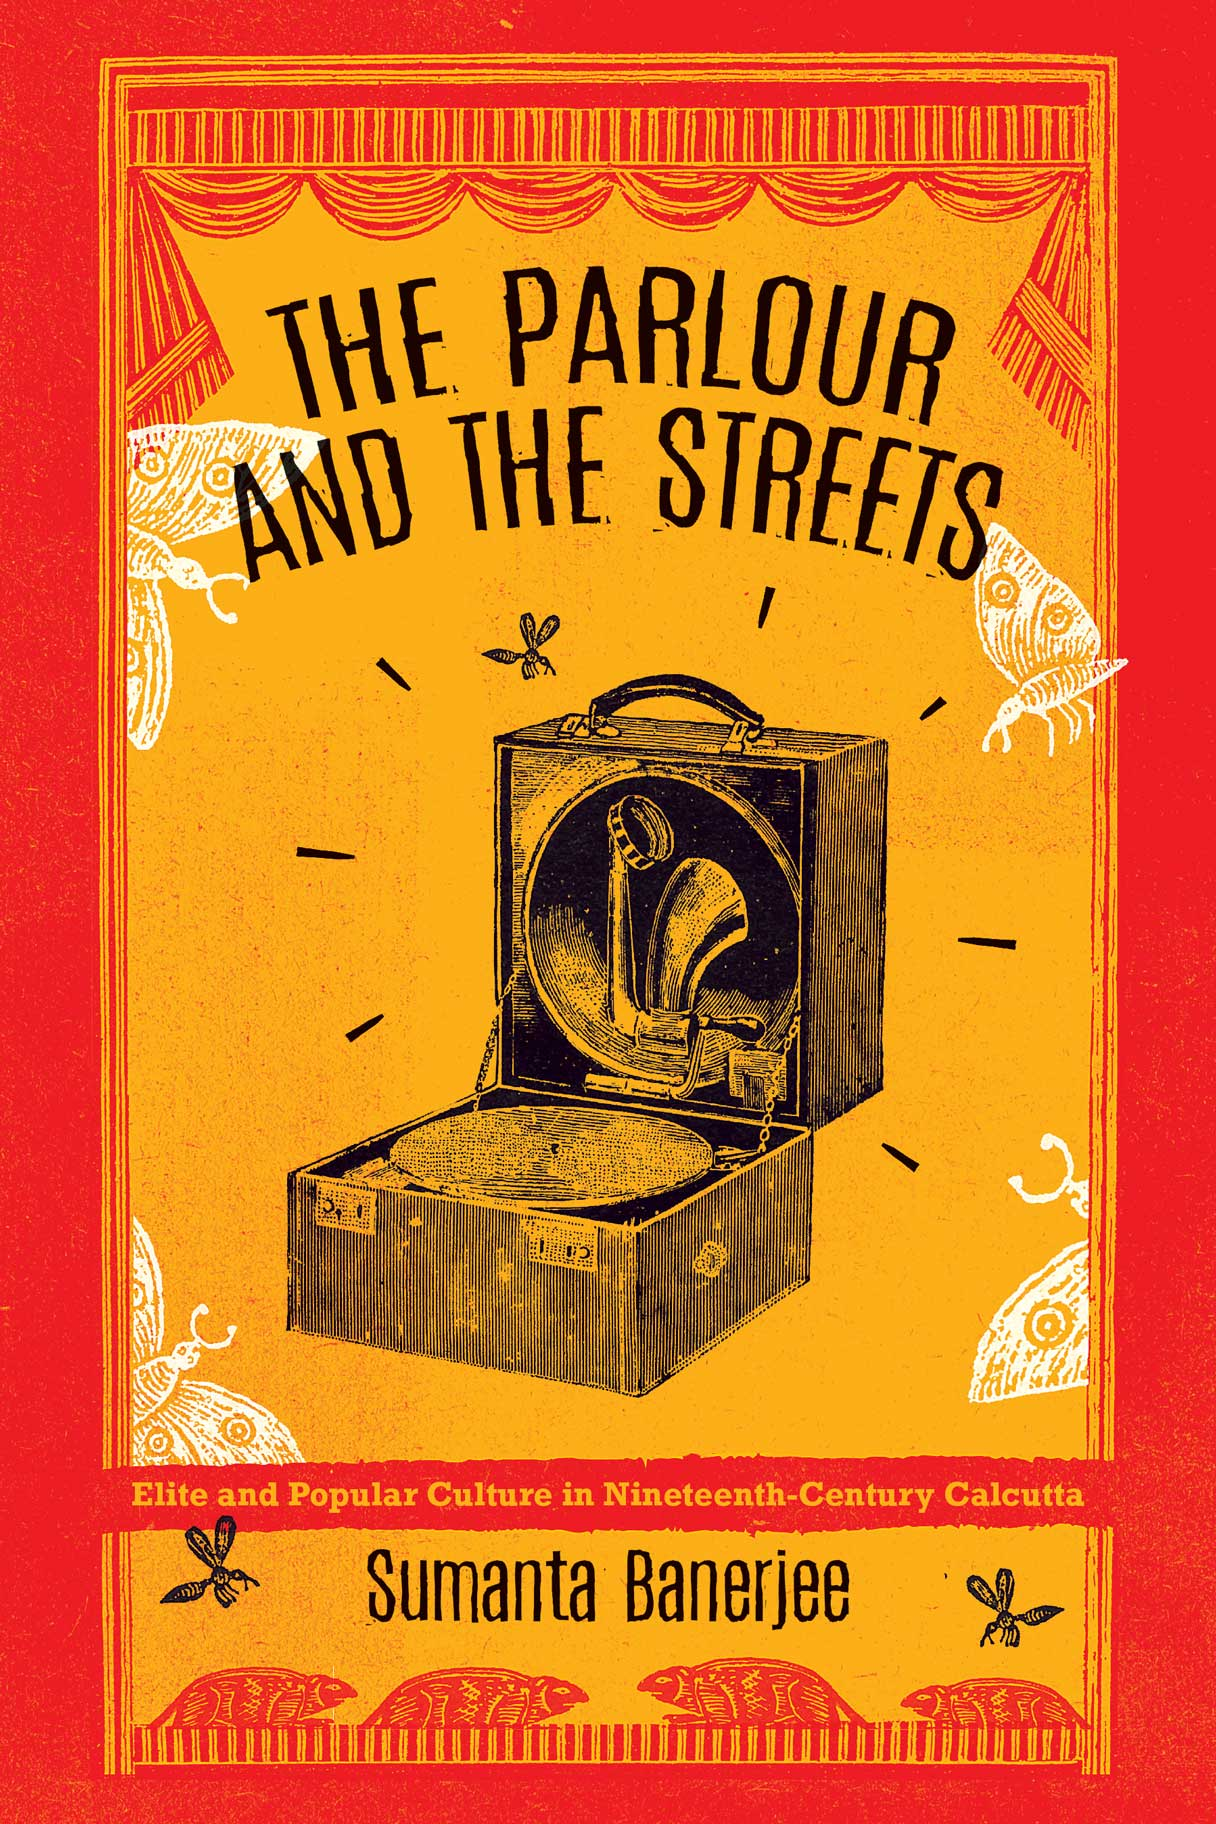 The Parlour and the Streets by Sumanta Banerjee | Seagull Books